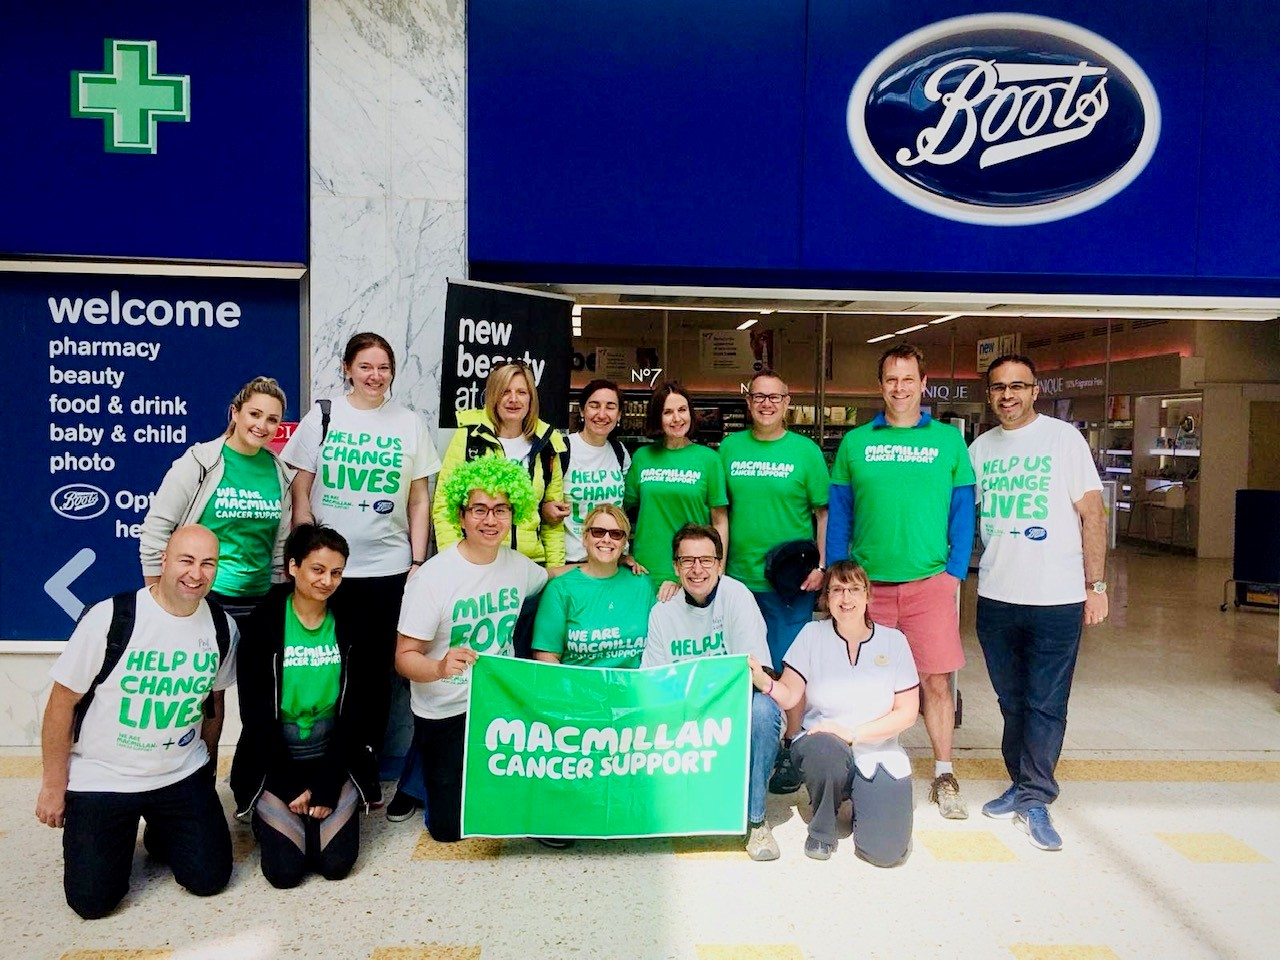 Head of Stores Mo Hassam with Macmillan Cancer fundraiser